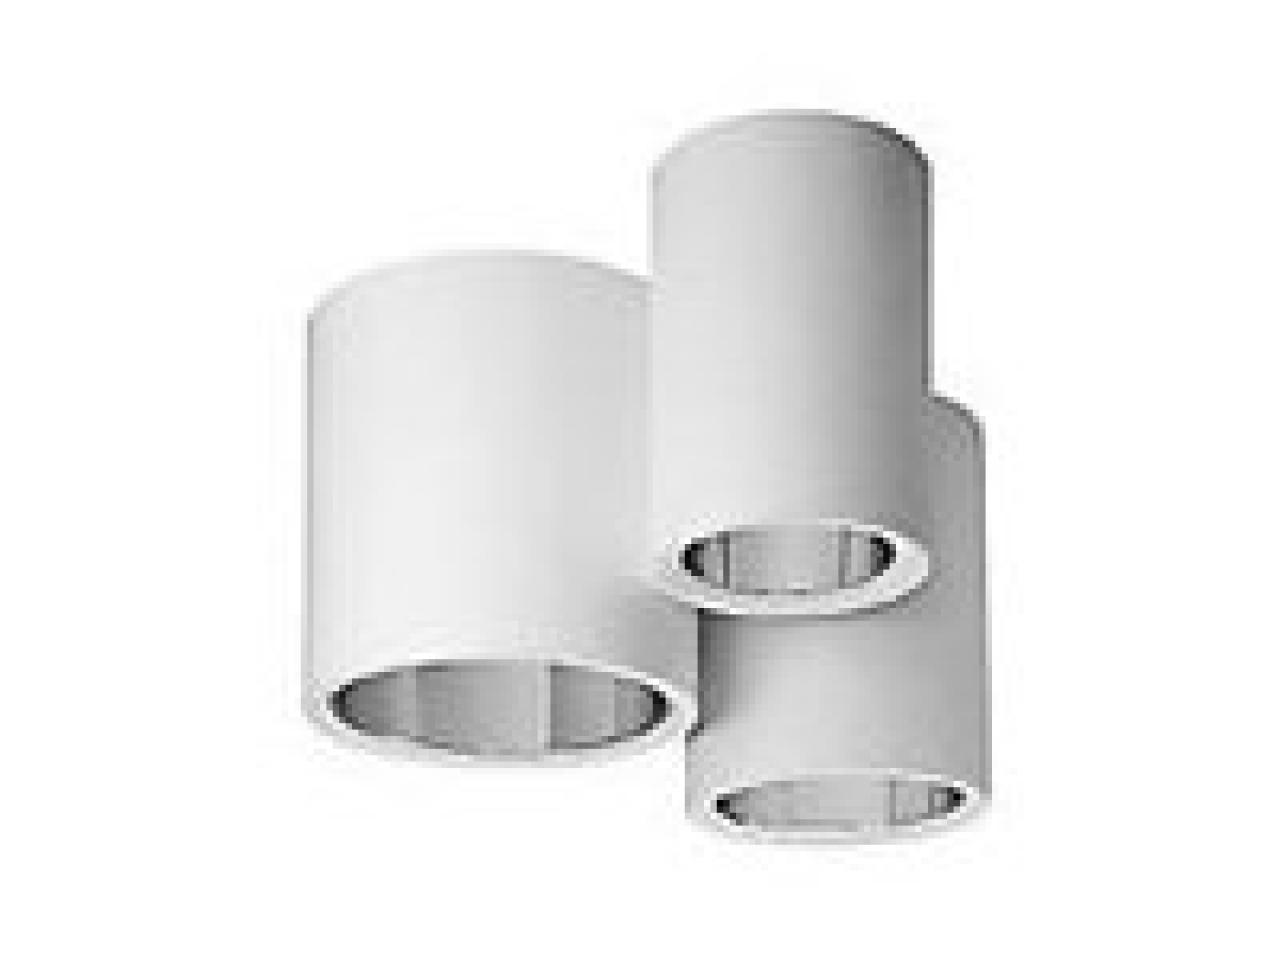 Stylish energy efficient bathroom lighting hgtv new options on the market aloadofball Images